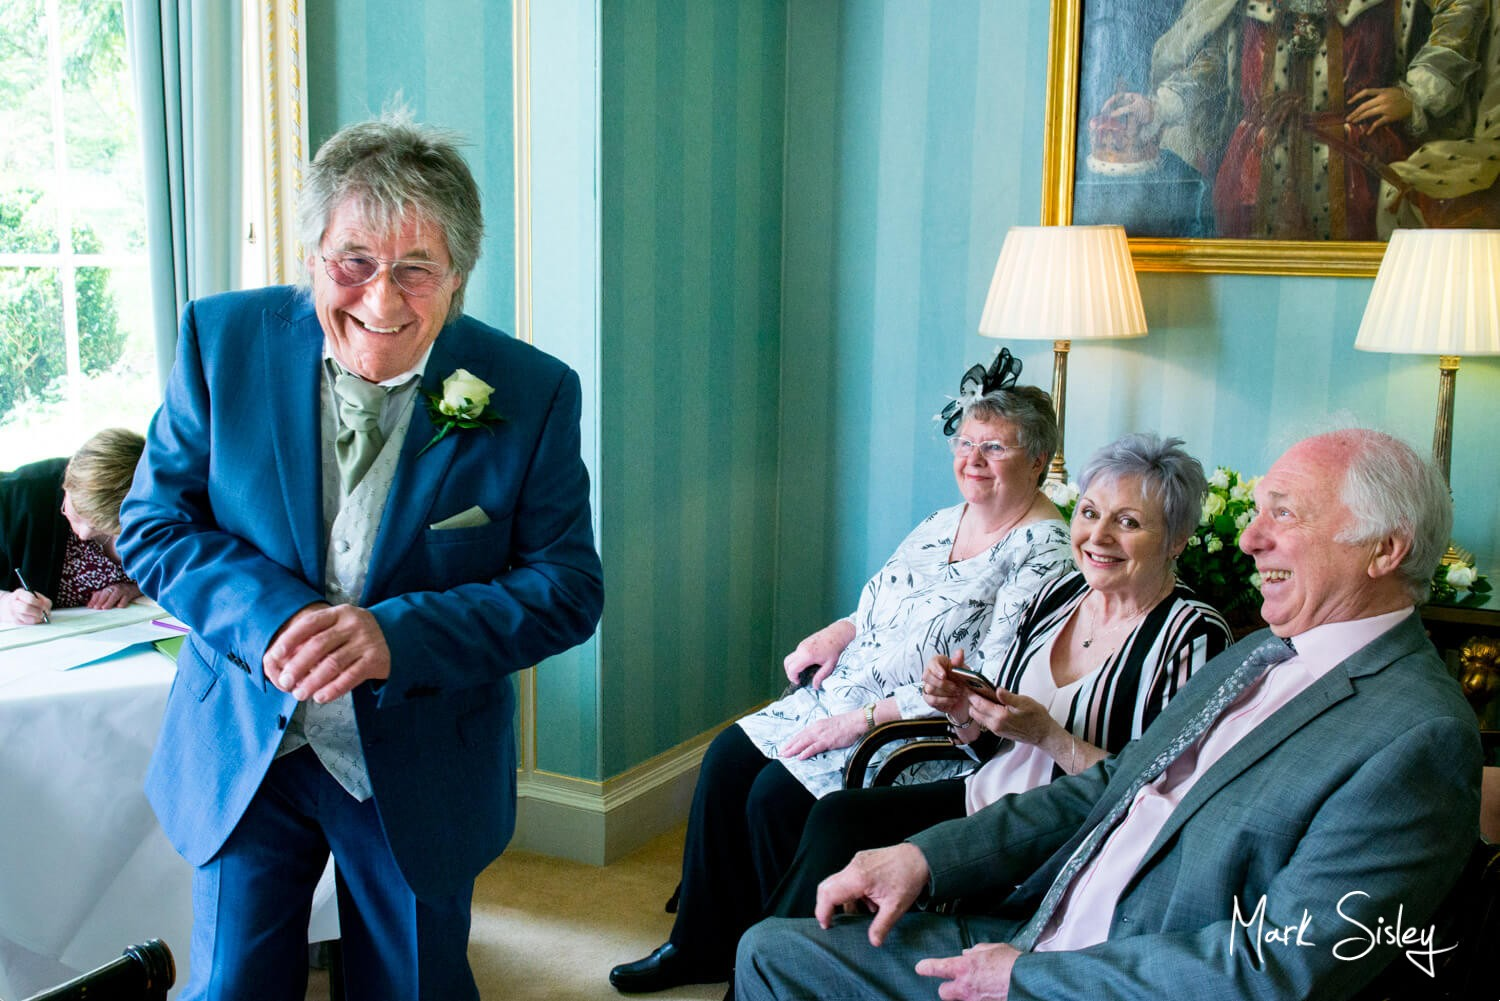 Fun and banter during this Hartwell House Hotel civil wedding ceremony